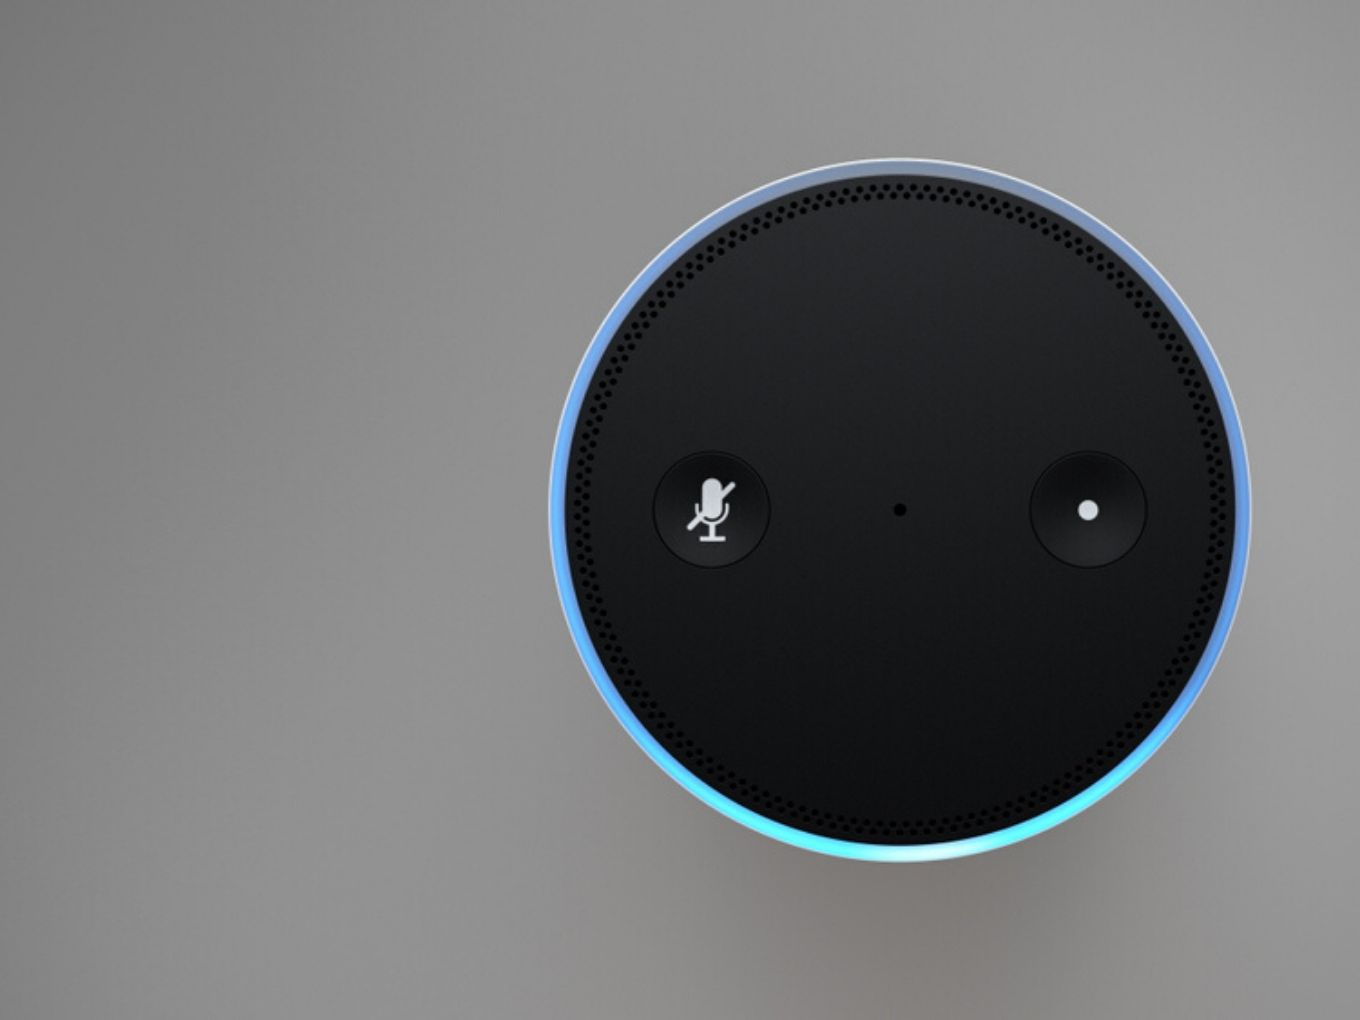 Turn Off Alexa To Keep Conversations Private, Says Amazon Exec